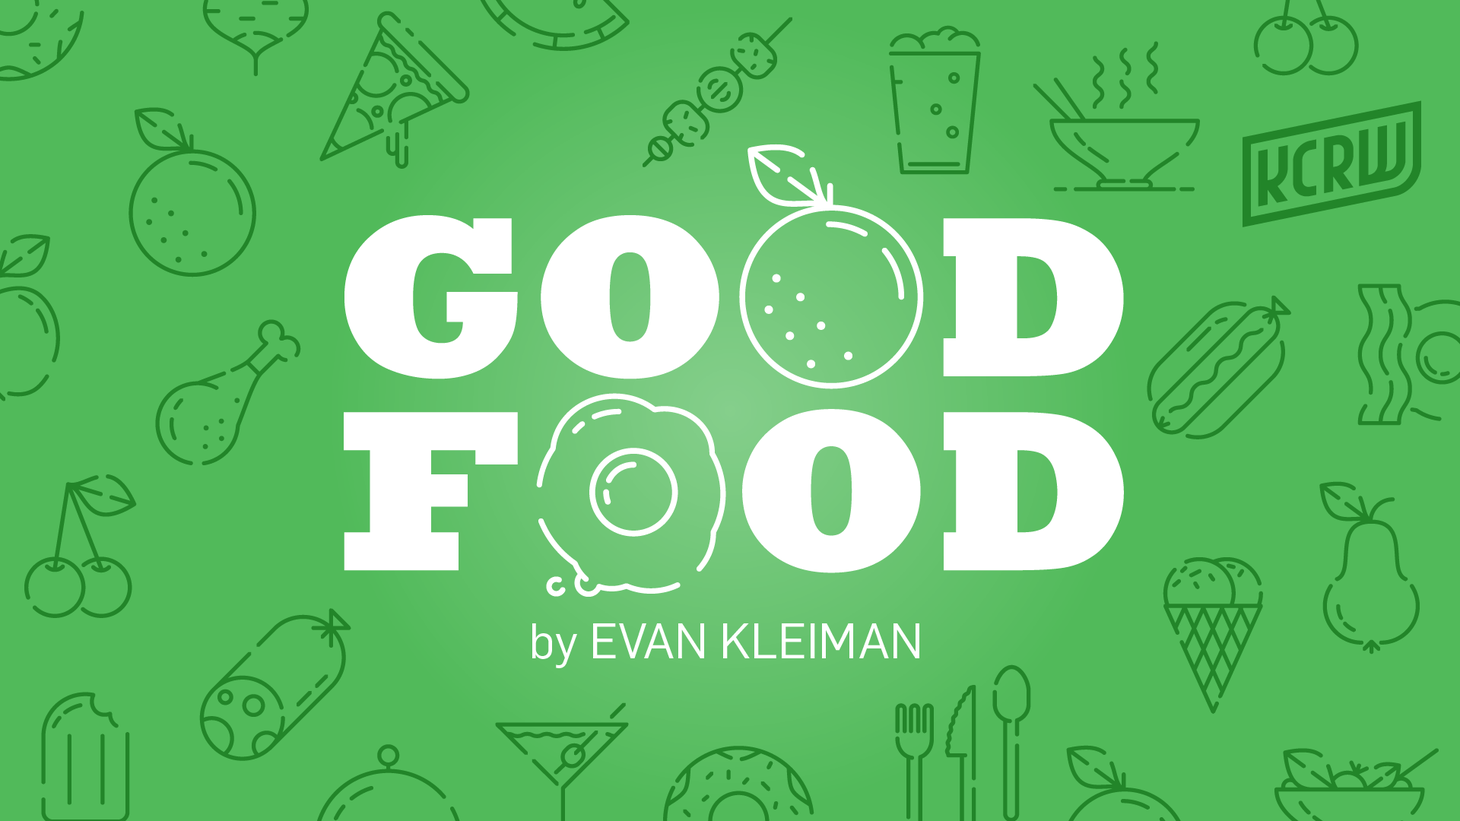 This week on Good Food we have a few guests discussing several different topics with Mary Sue and Susan. They'll talk with Evan Kleiman from Angeli Caffe about how to cure your own green olives. We'll learn the secret to making an authentic Napoleon pizza from the owner of Antica Pizzeria. We'll also tell you how to make Thai food at home with noted Thai food and culture expert, Nancie McDermott. Also, we have a guest to help you with the top 10 things you'll need to get cooking.